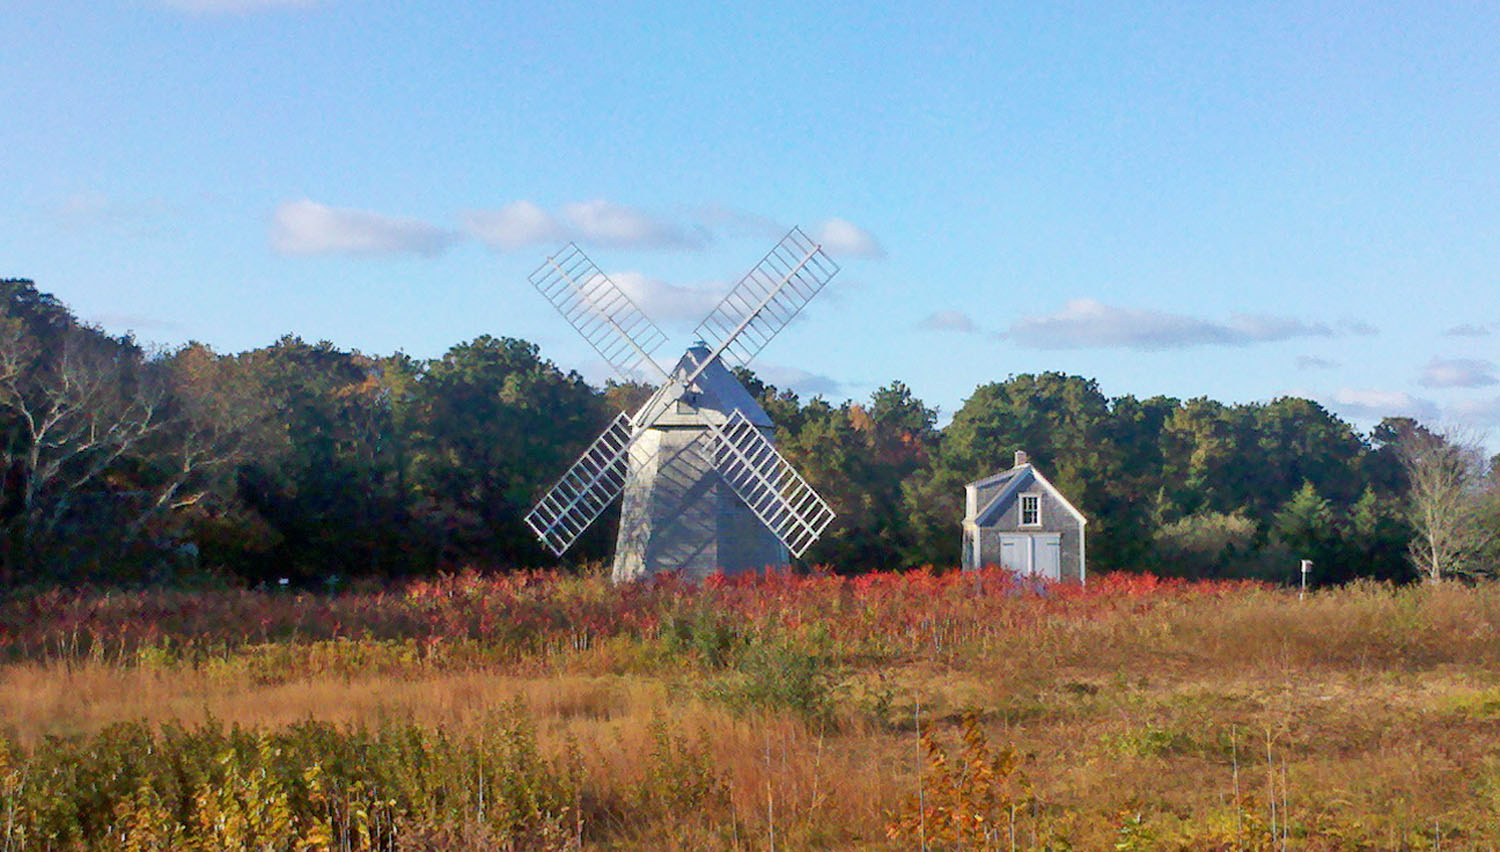 Cape Cod, Nantucket, and Martha's Vineyard are generally synonymous with sandy beaches and summertime vacations. But, with crowds gone and warm days and cool nights, fall is also a wonderful time of year to visit.